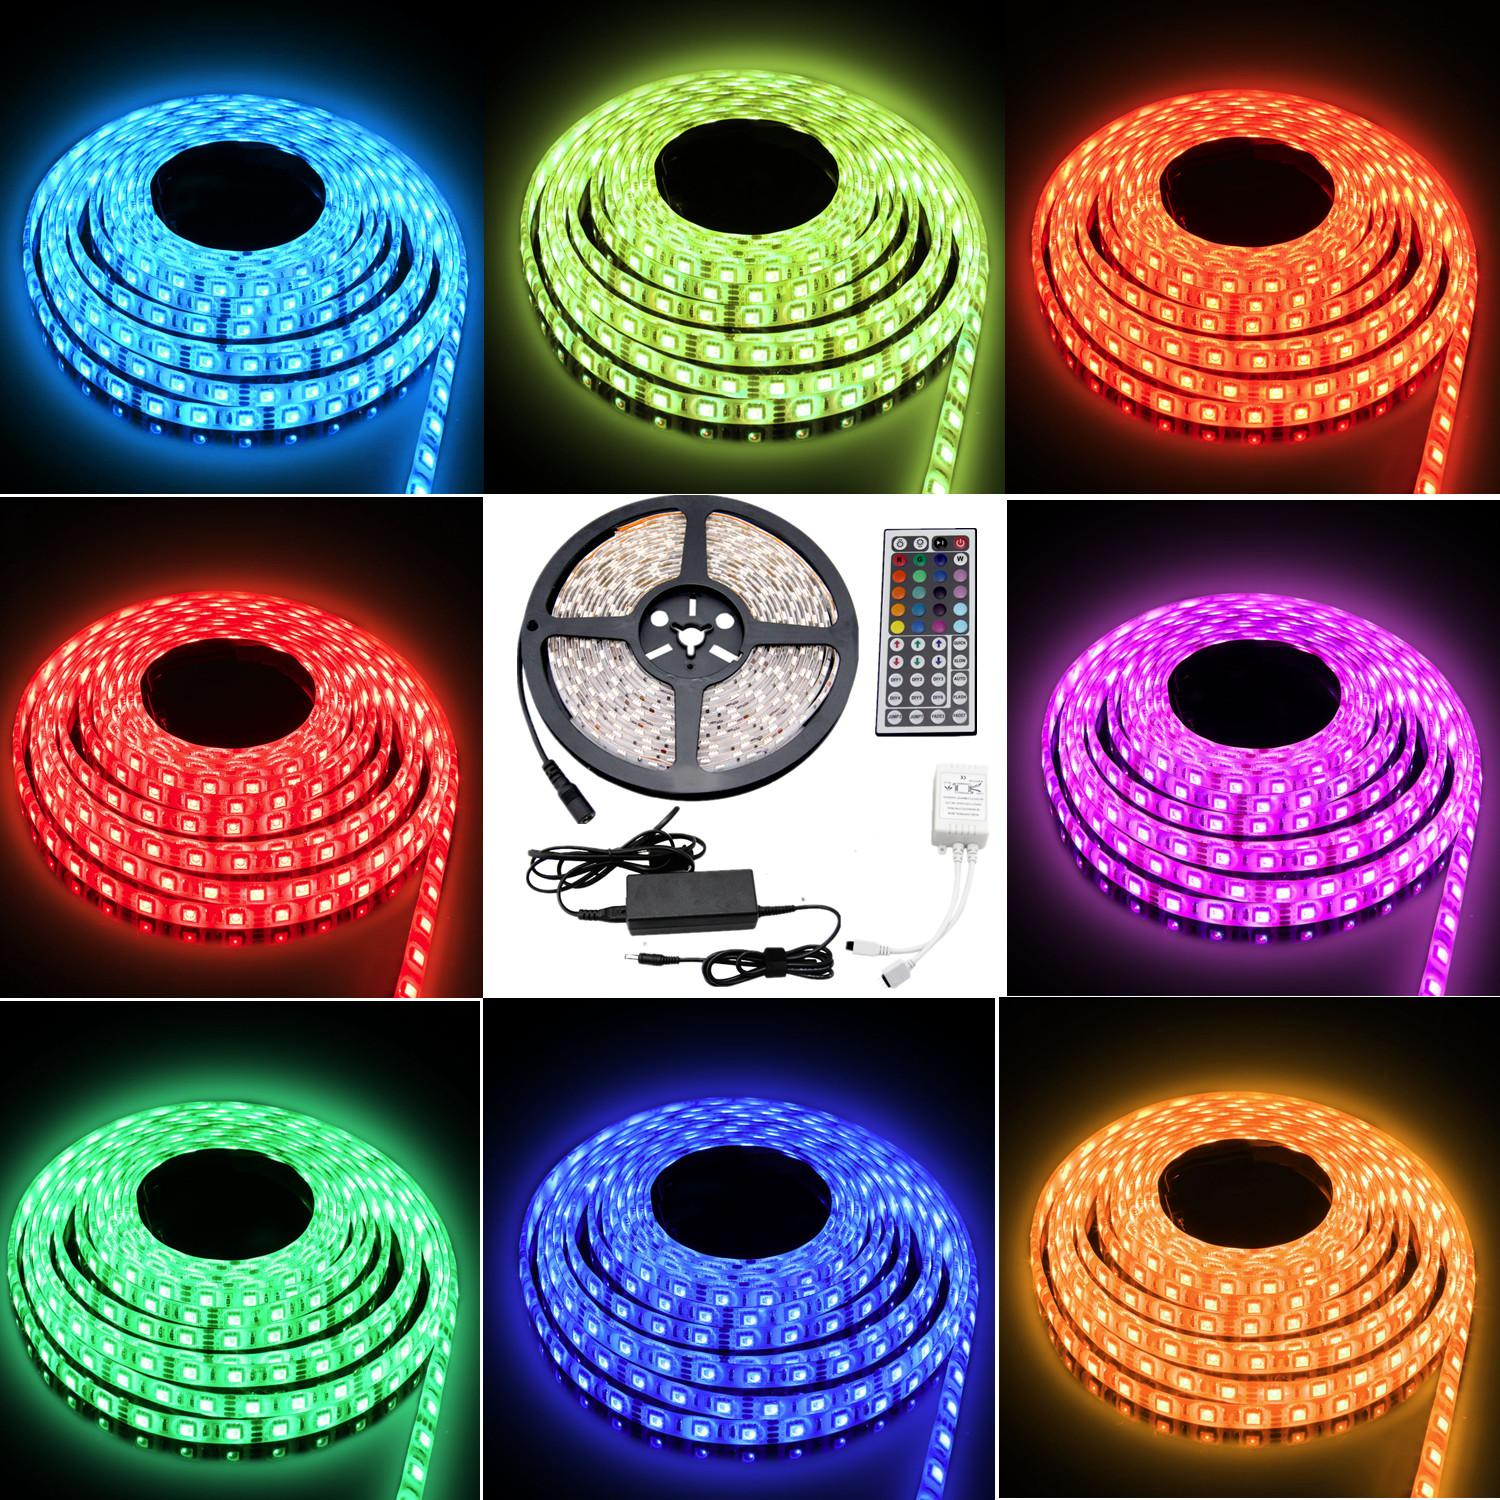 Besdata 164ft 5m waterproof rope lights 300 led 5050 smd color besdata 164ft 5m waterproof rope lights 300 led 5050 smd color changing redgb12v 5a power supply44 key remoteir controller muliti color waterproof led aloadofball Gallery